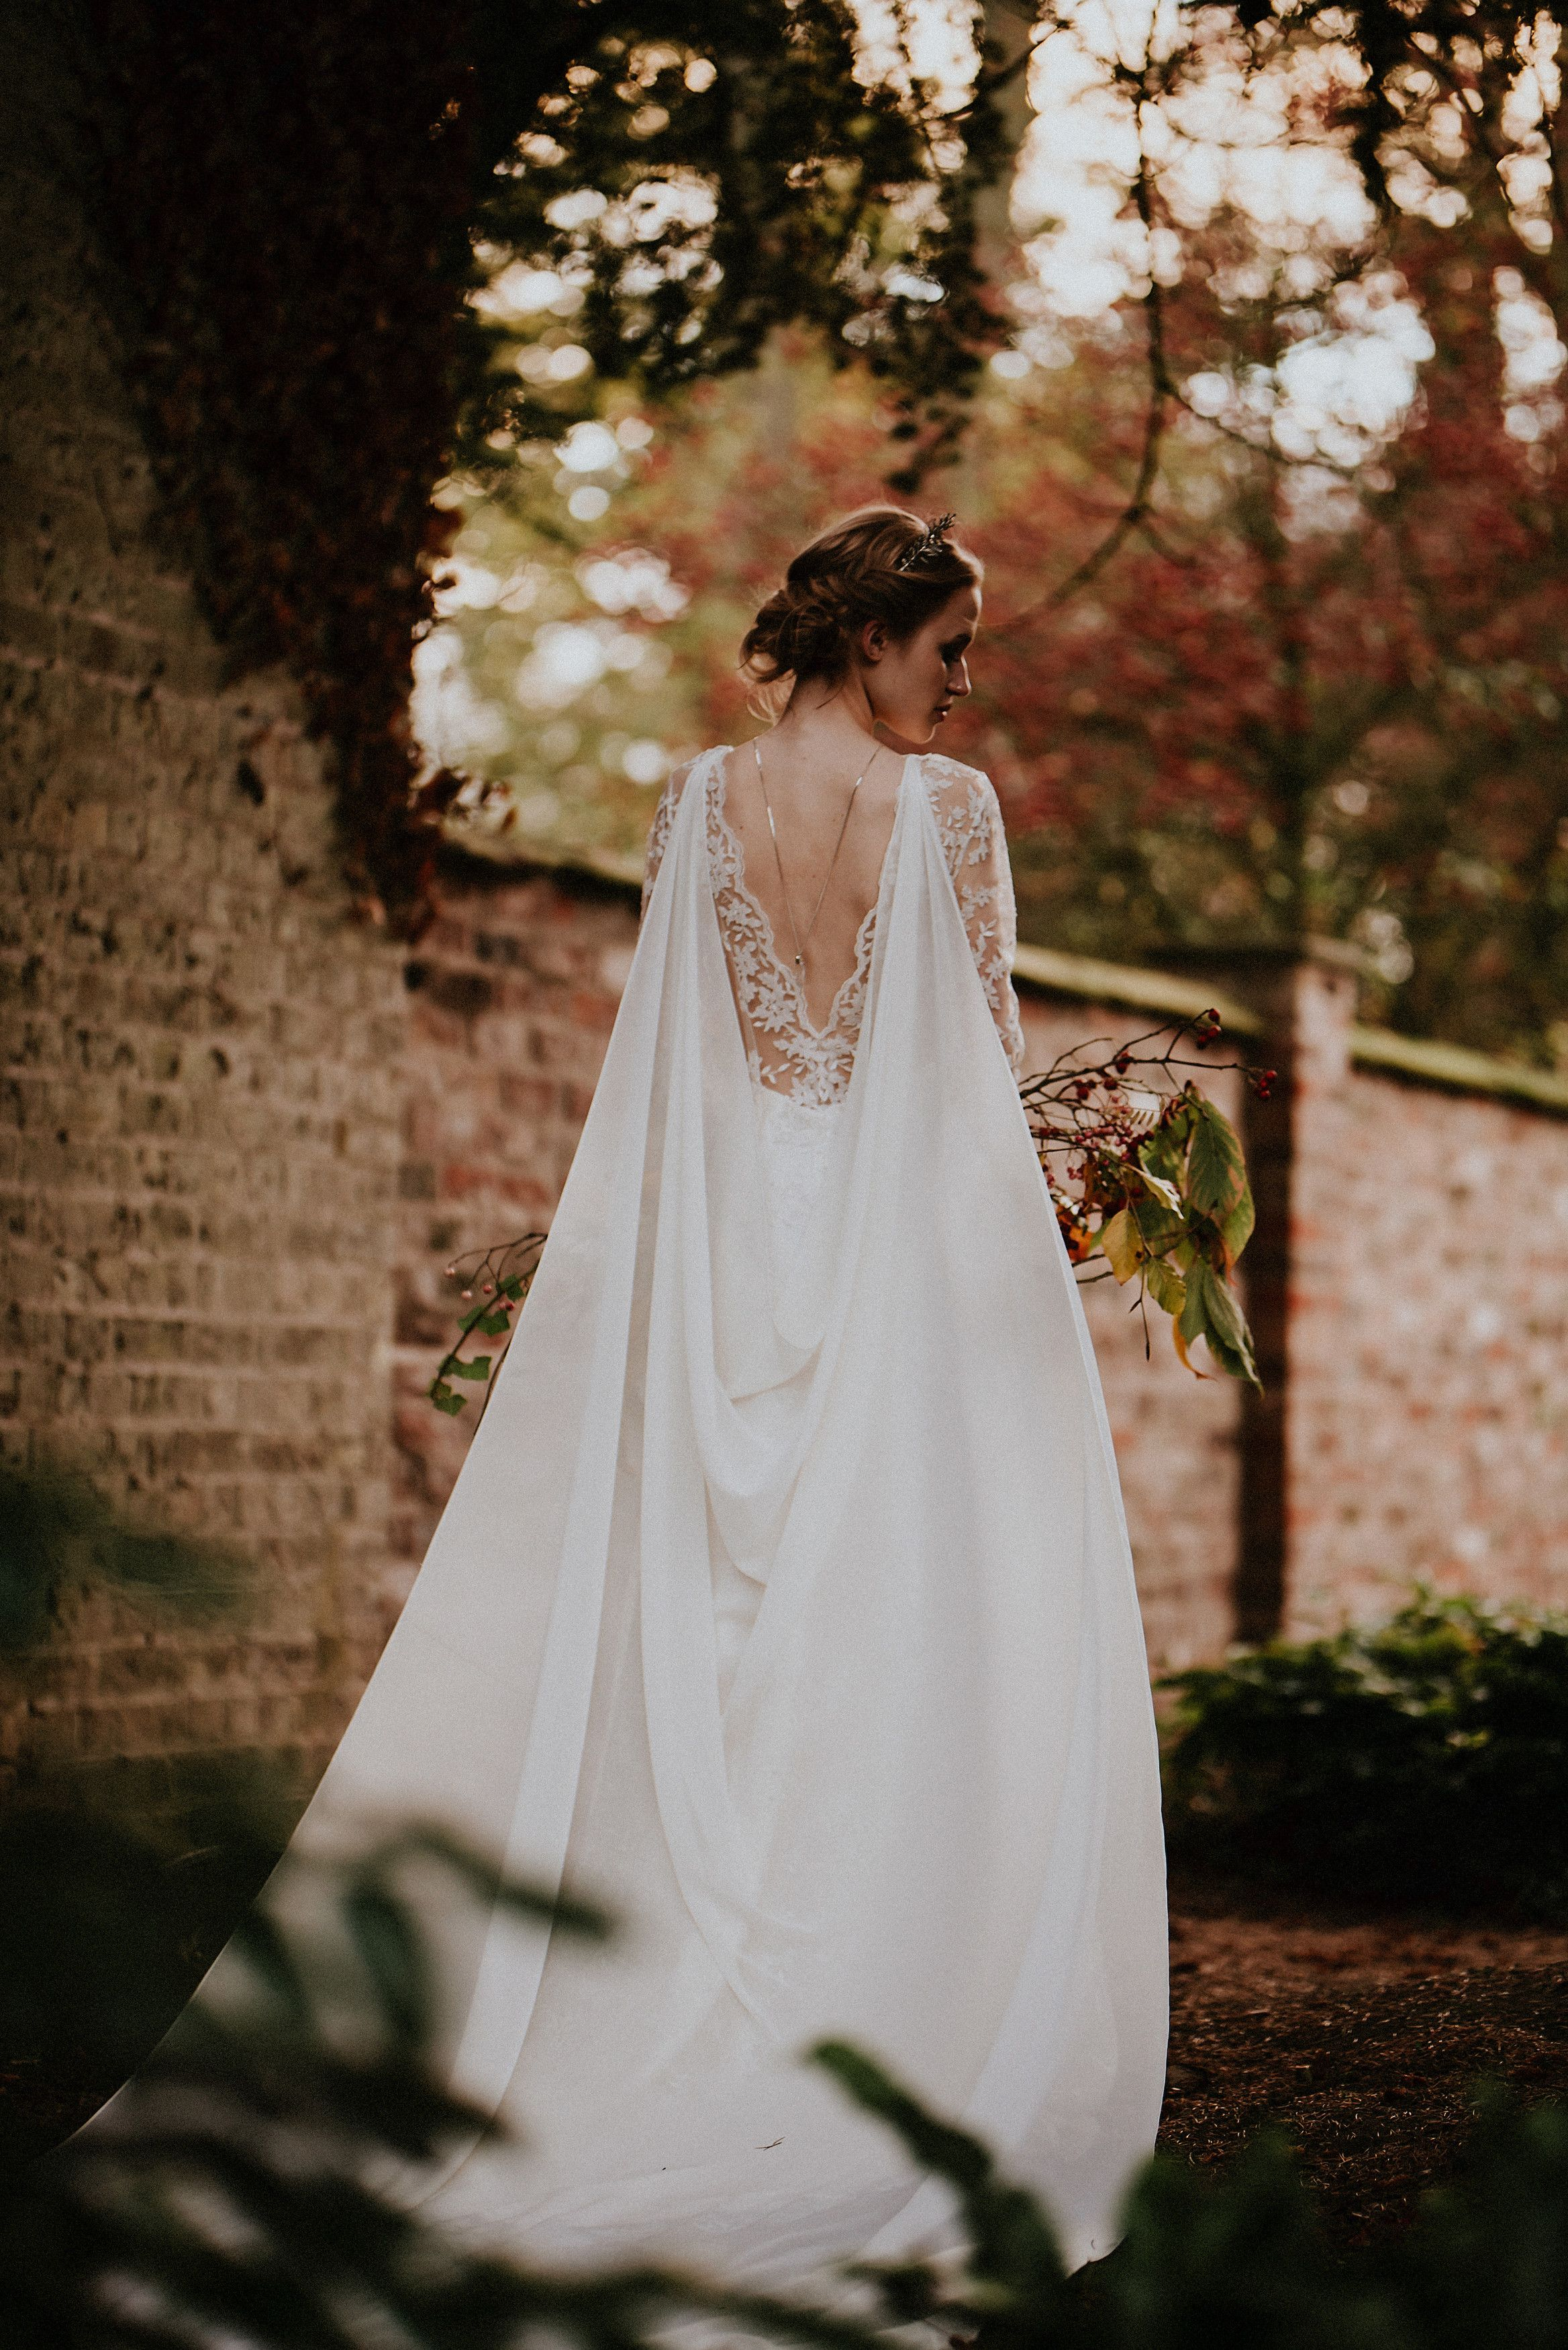 Open back dress #armadale #australia | Wedding outfits | Pinterest ...